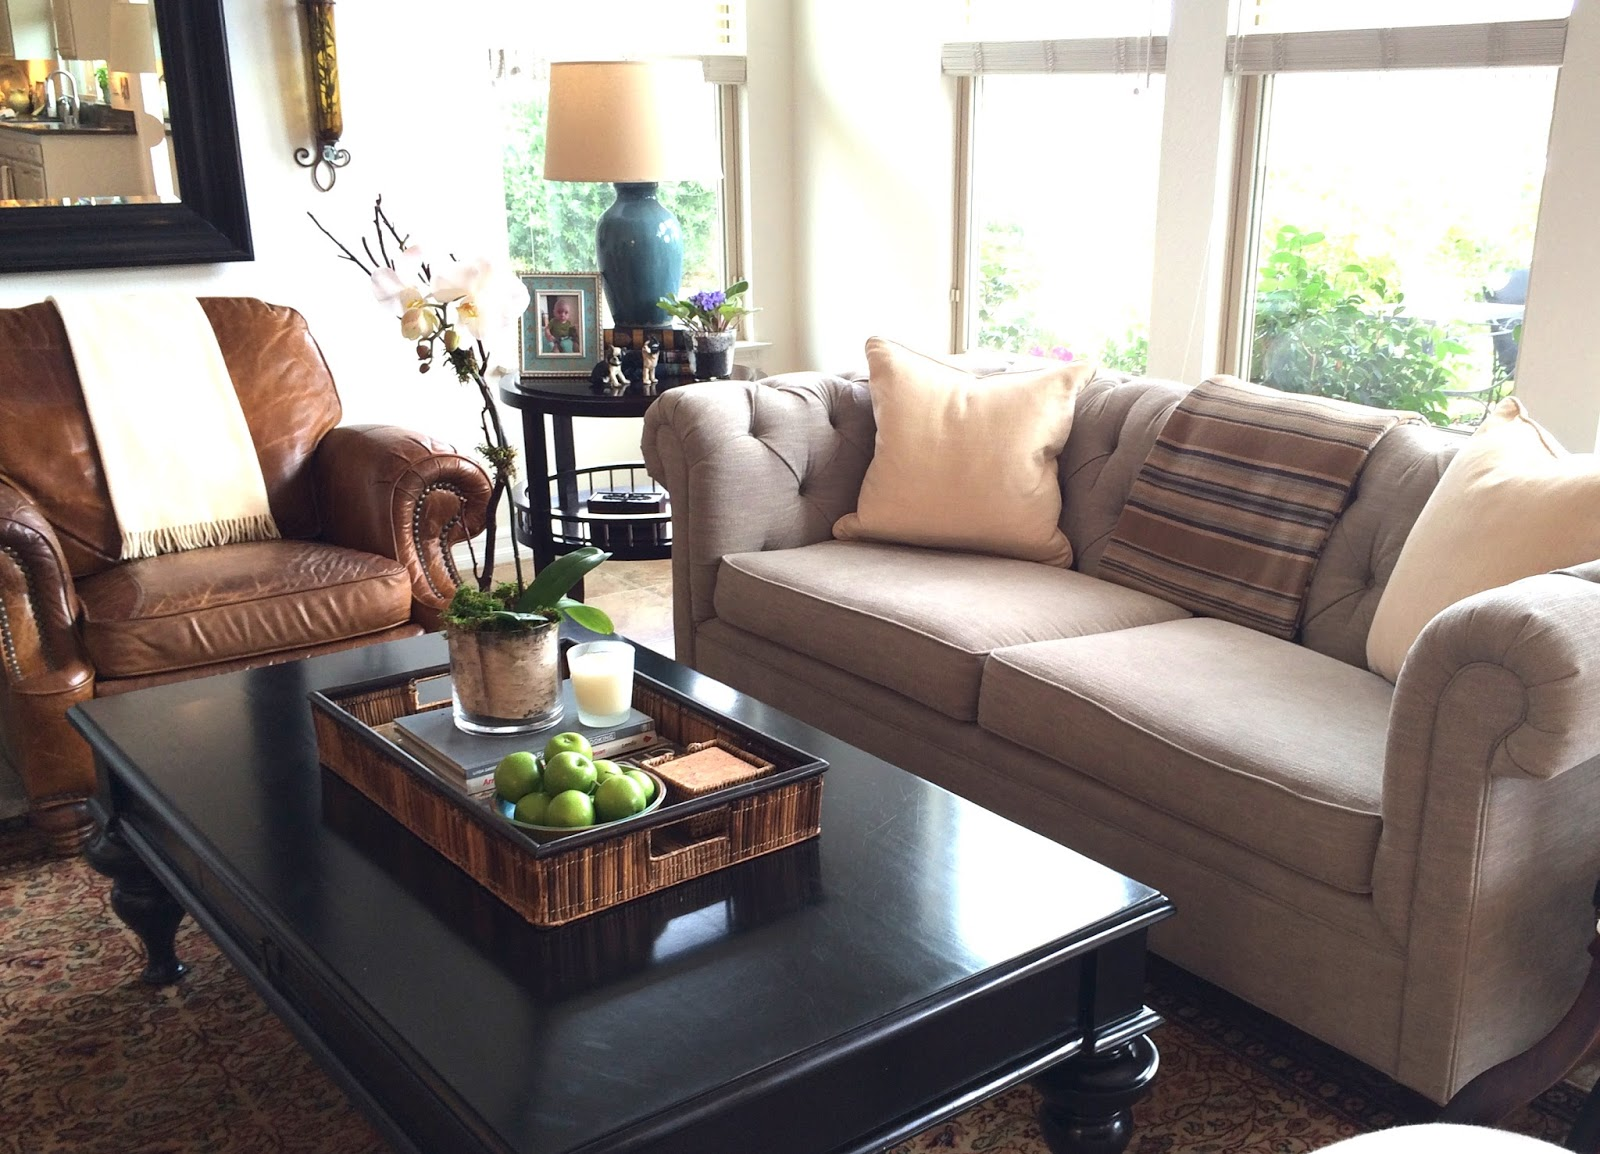 Superbe Add Dark Coffee Table For Comfy Living Room With Leather Sofa And Grey Pottery  Barn Sofa